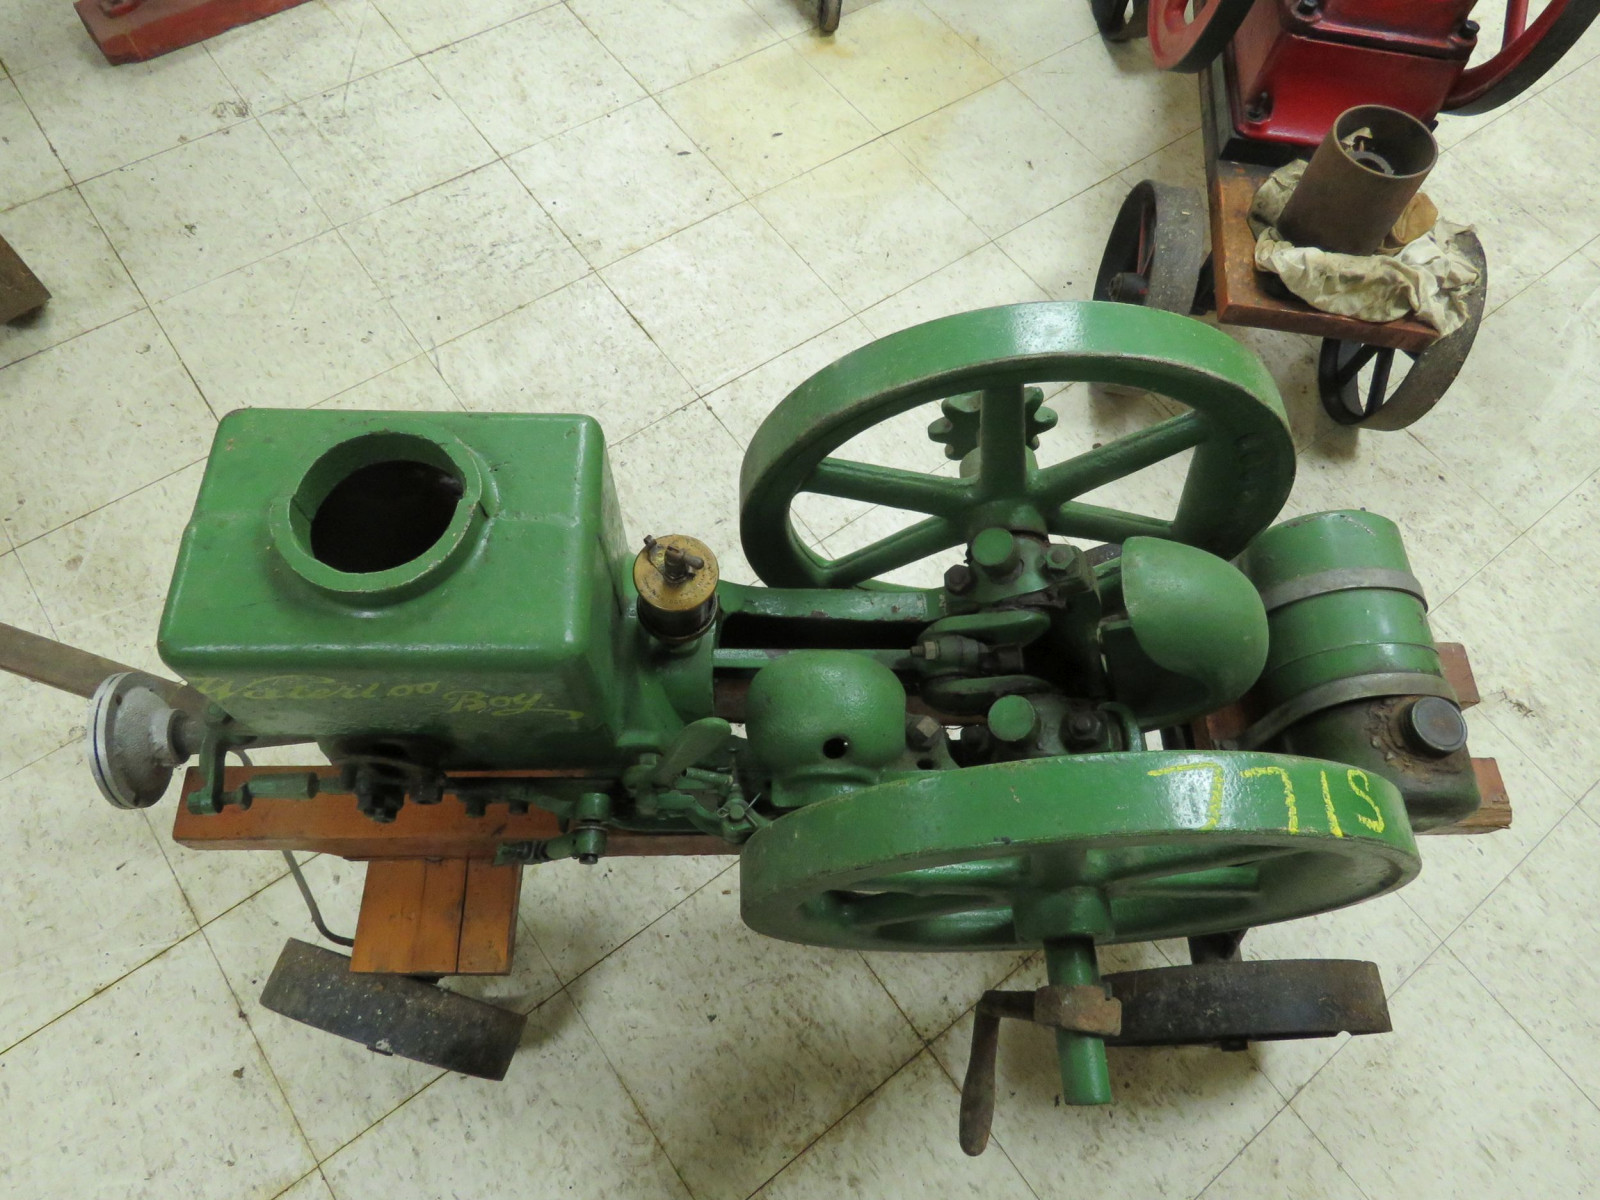 Waterloo Boy Stationary Gas Engine on Cart - Image 3